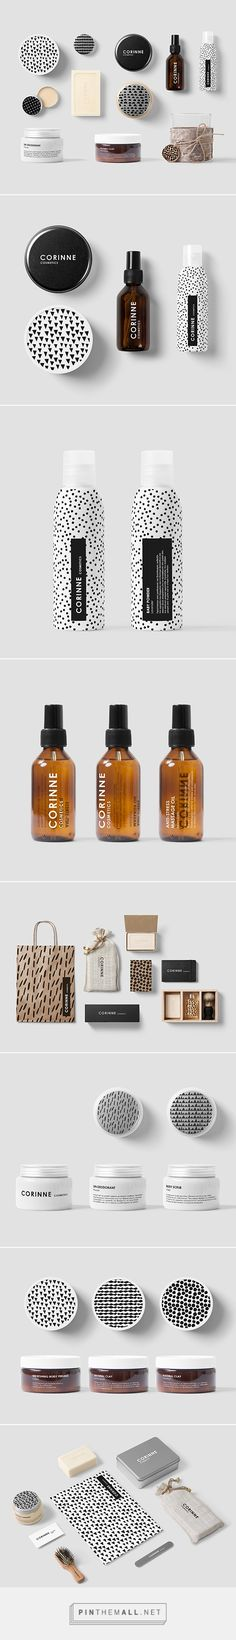 Corinne Designed by Anna Trympali Craft Packaging, Food Packaging Design, Soap Packaging, Branding Design, Skincare Packaging, Cosmetic Packaging, Beauty Packaging, Packaging Inspiration, Unique Makeup